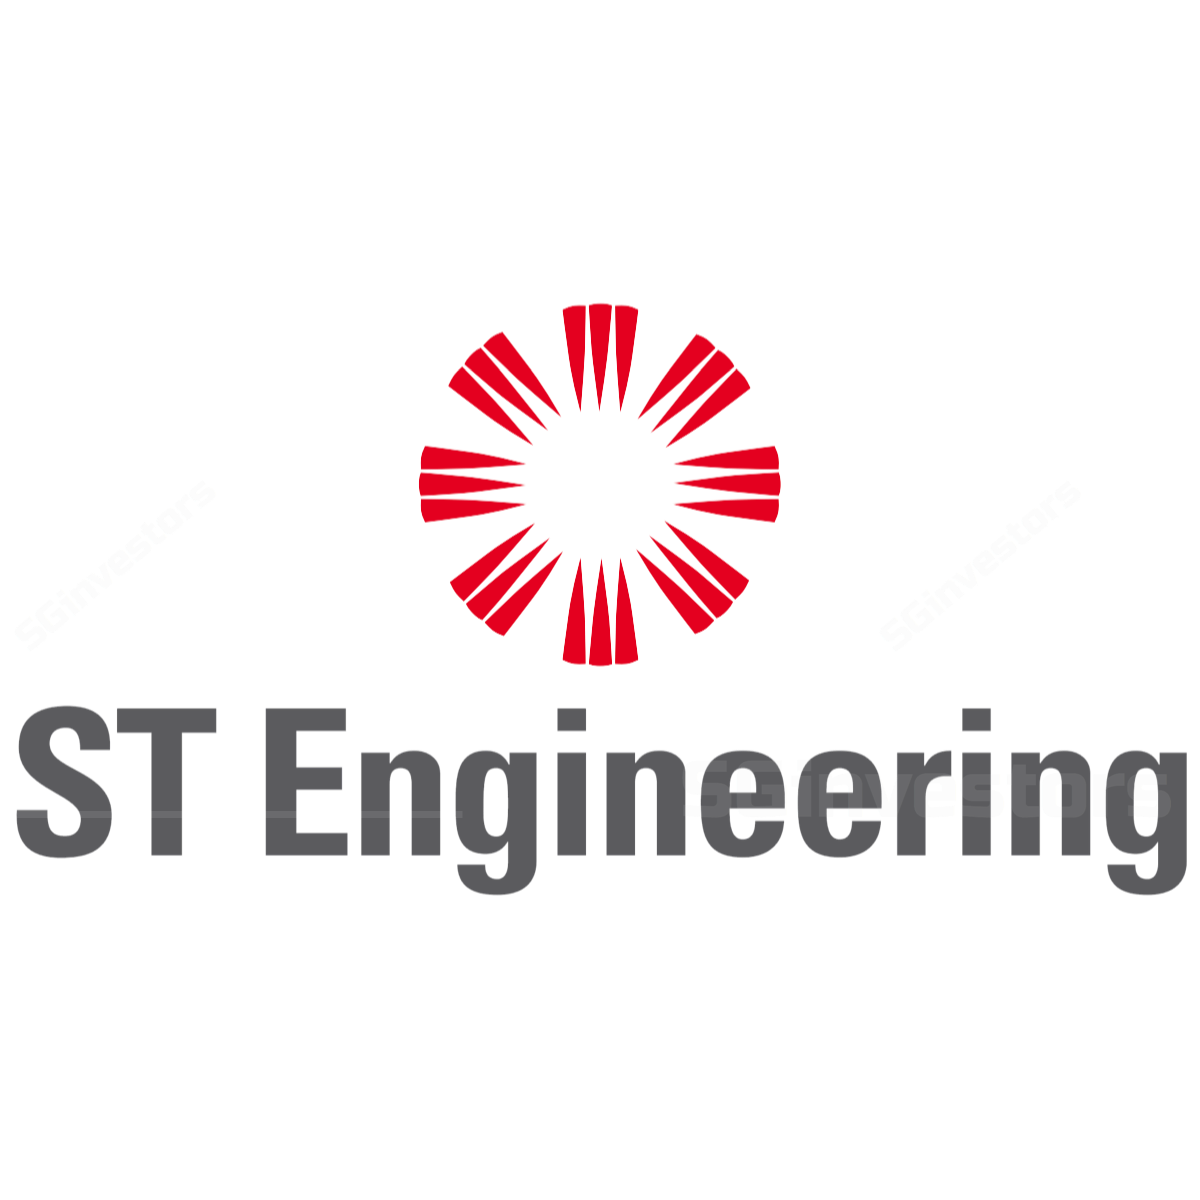 ST Engineering (STE SP) - UOB Kay Hian 2017-05-15: 1Q17 PBT Beat Expectations; Stay Invested For Long-term Growth